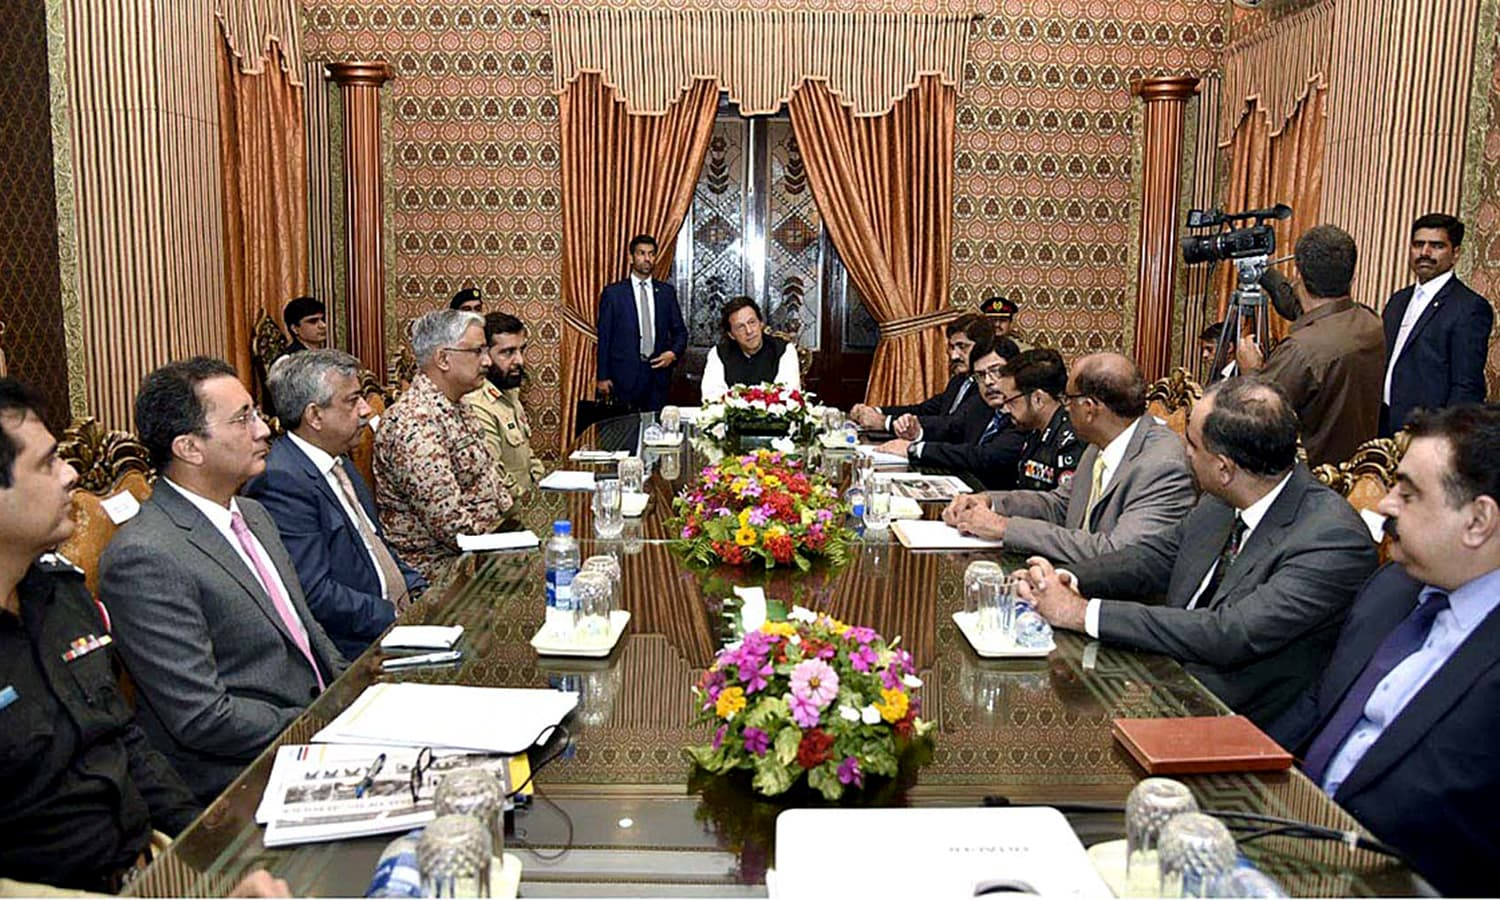 Prime Minister Imran Khan chairs meeting on law & order at State Guest House. —APP